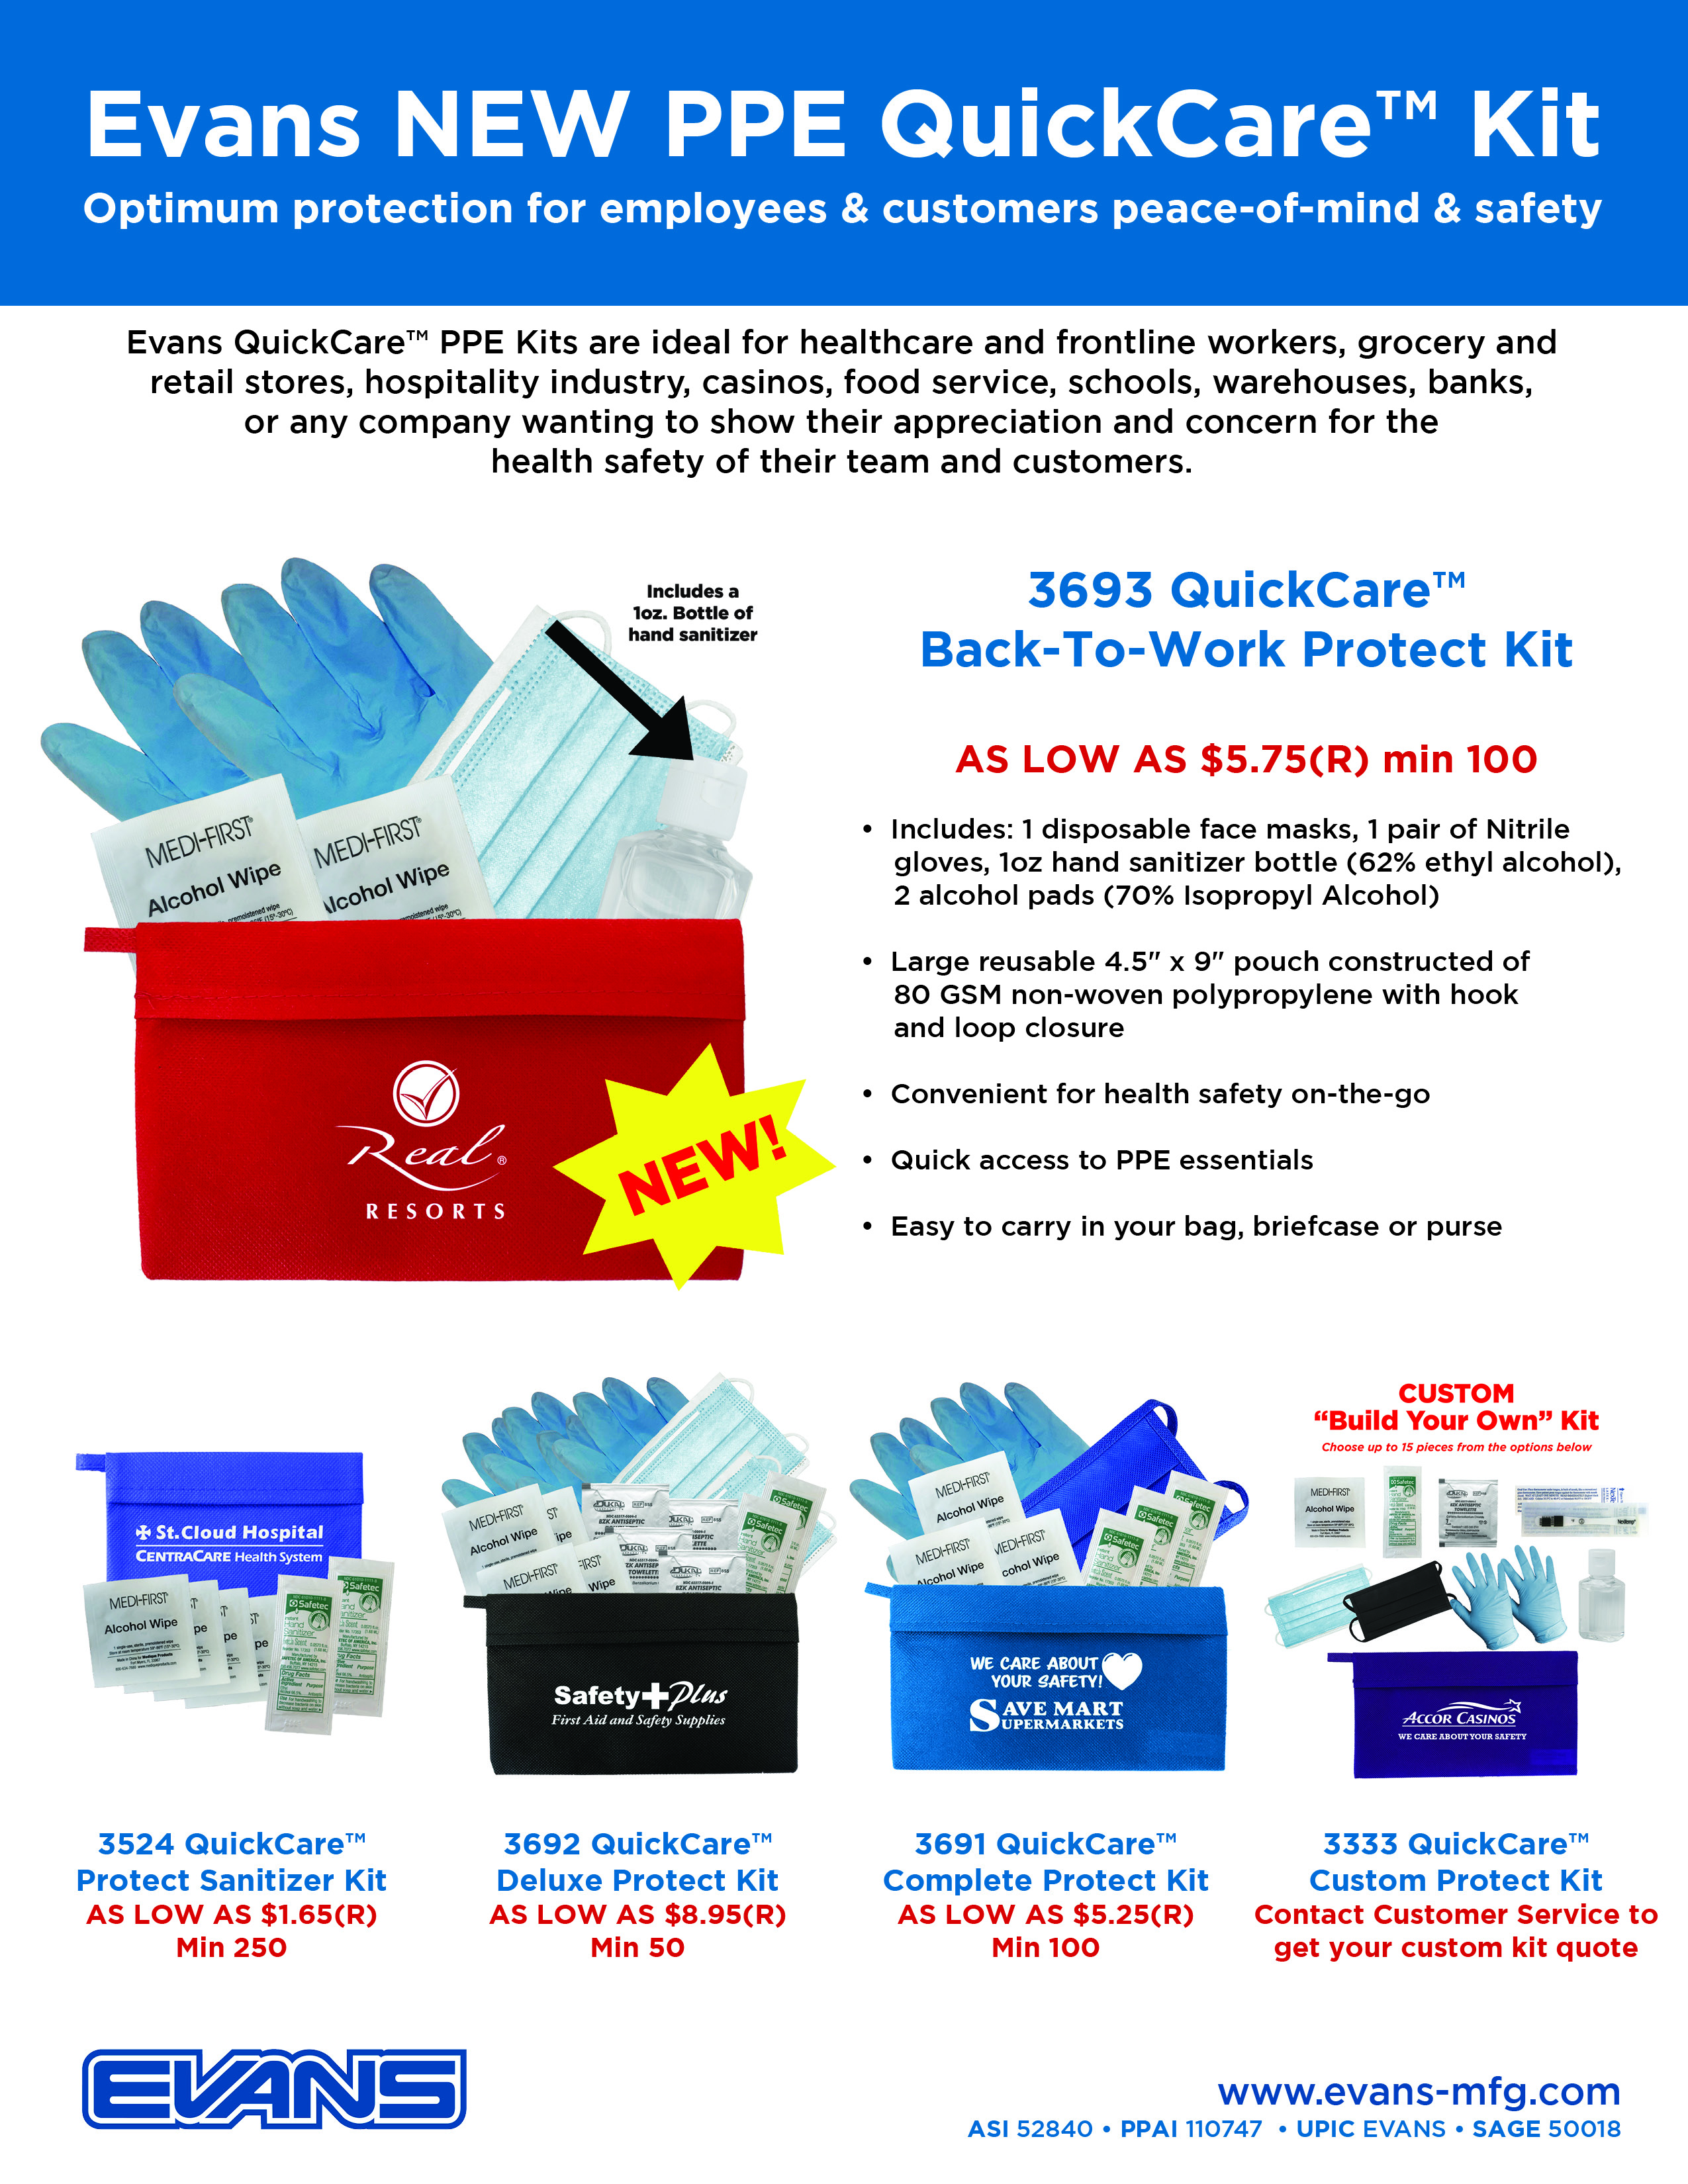 QuickCare kits